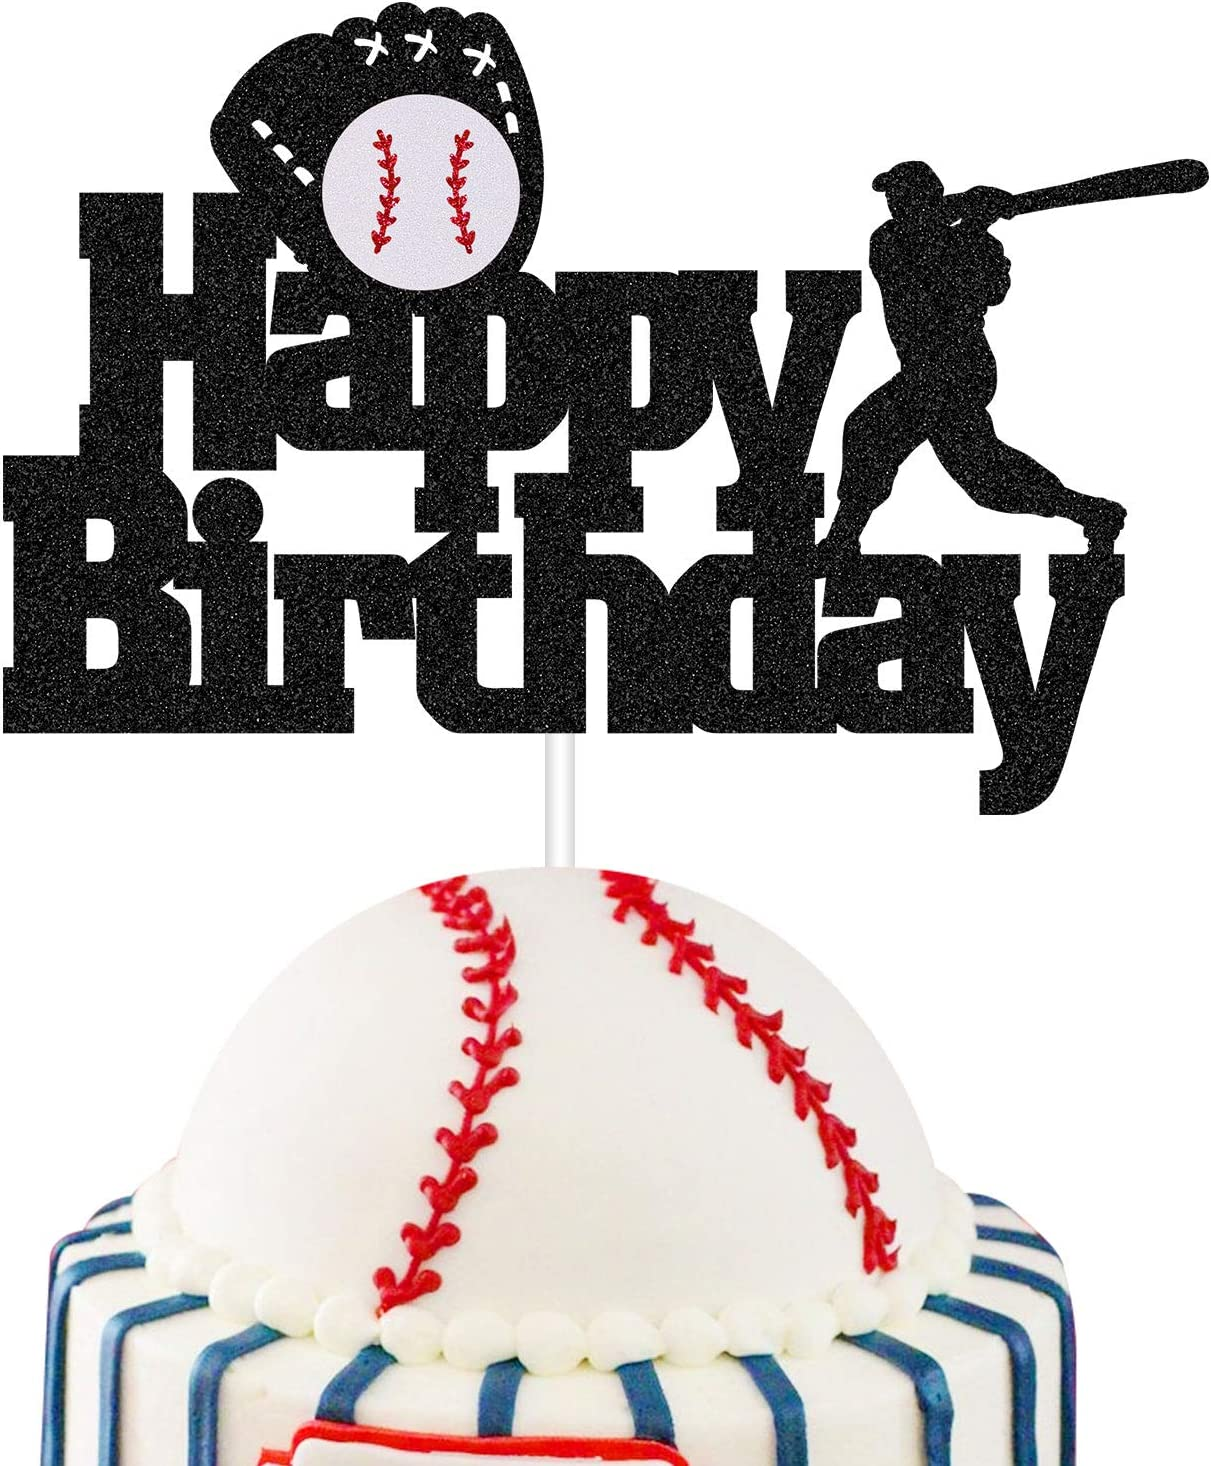 Purp Pie Baseball Happy Birthday Cake Topper, Sports Theme Party Decoration Supplies 1st First Birthday Baby Shower Cake Decor for Kids Concessions Glittery One Cake Topper (Baseball)